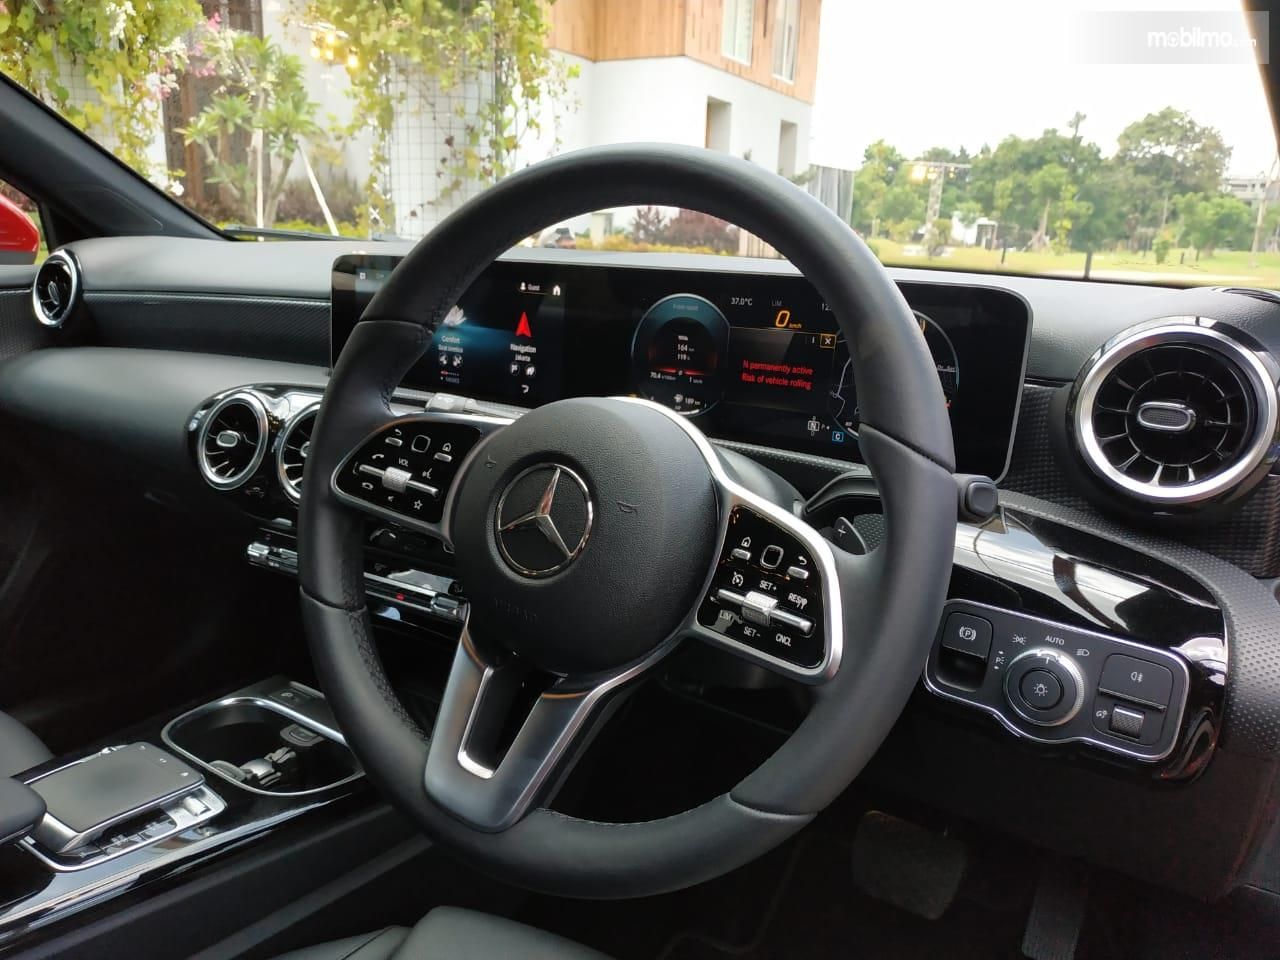 Review Mercedes-Benz A 200 Progressive Line 2019: Tampak Setir Mercedes-Benz A 200 Progressive Line 2019